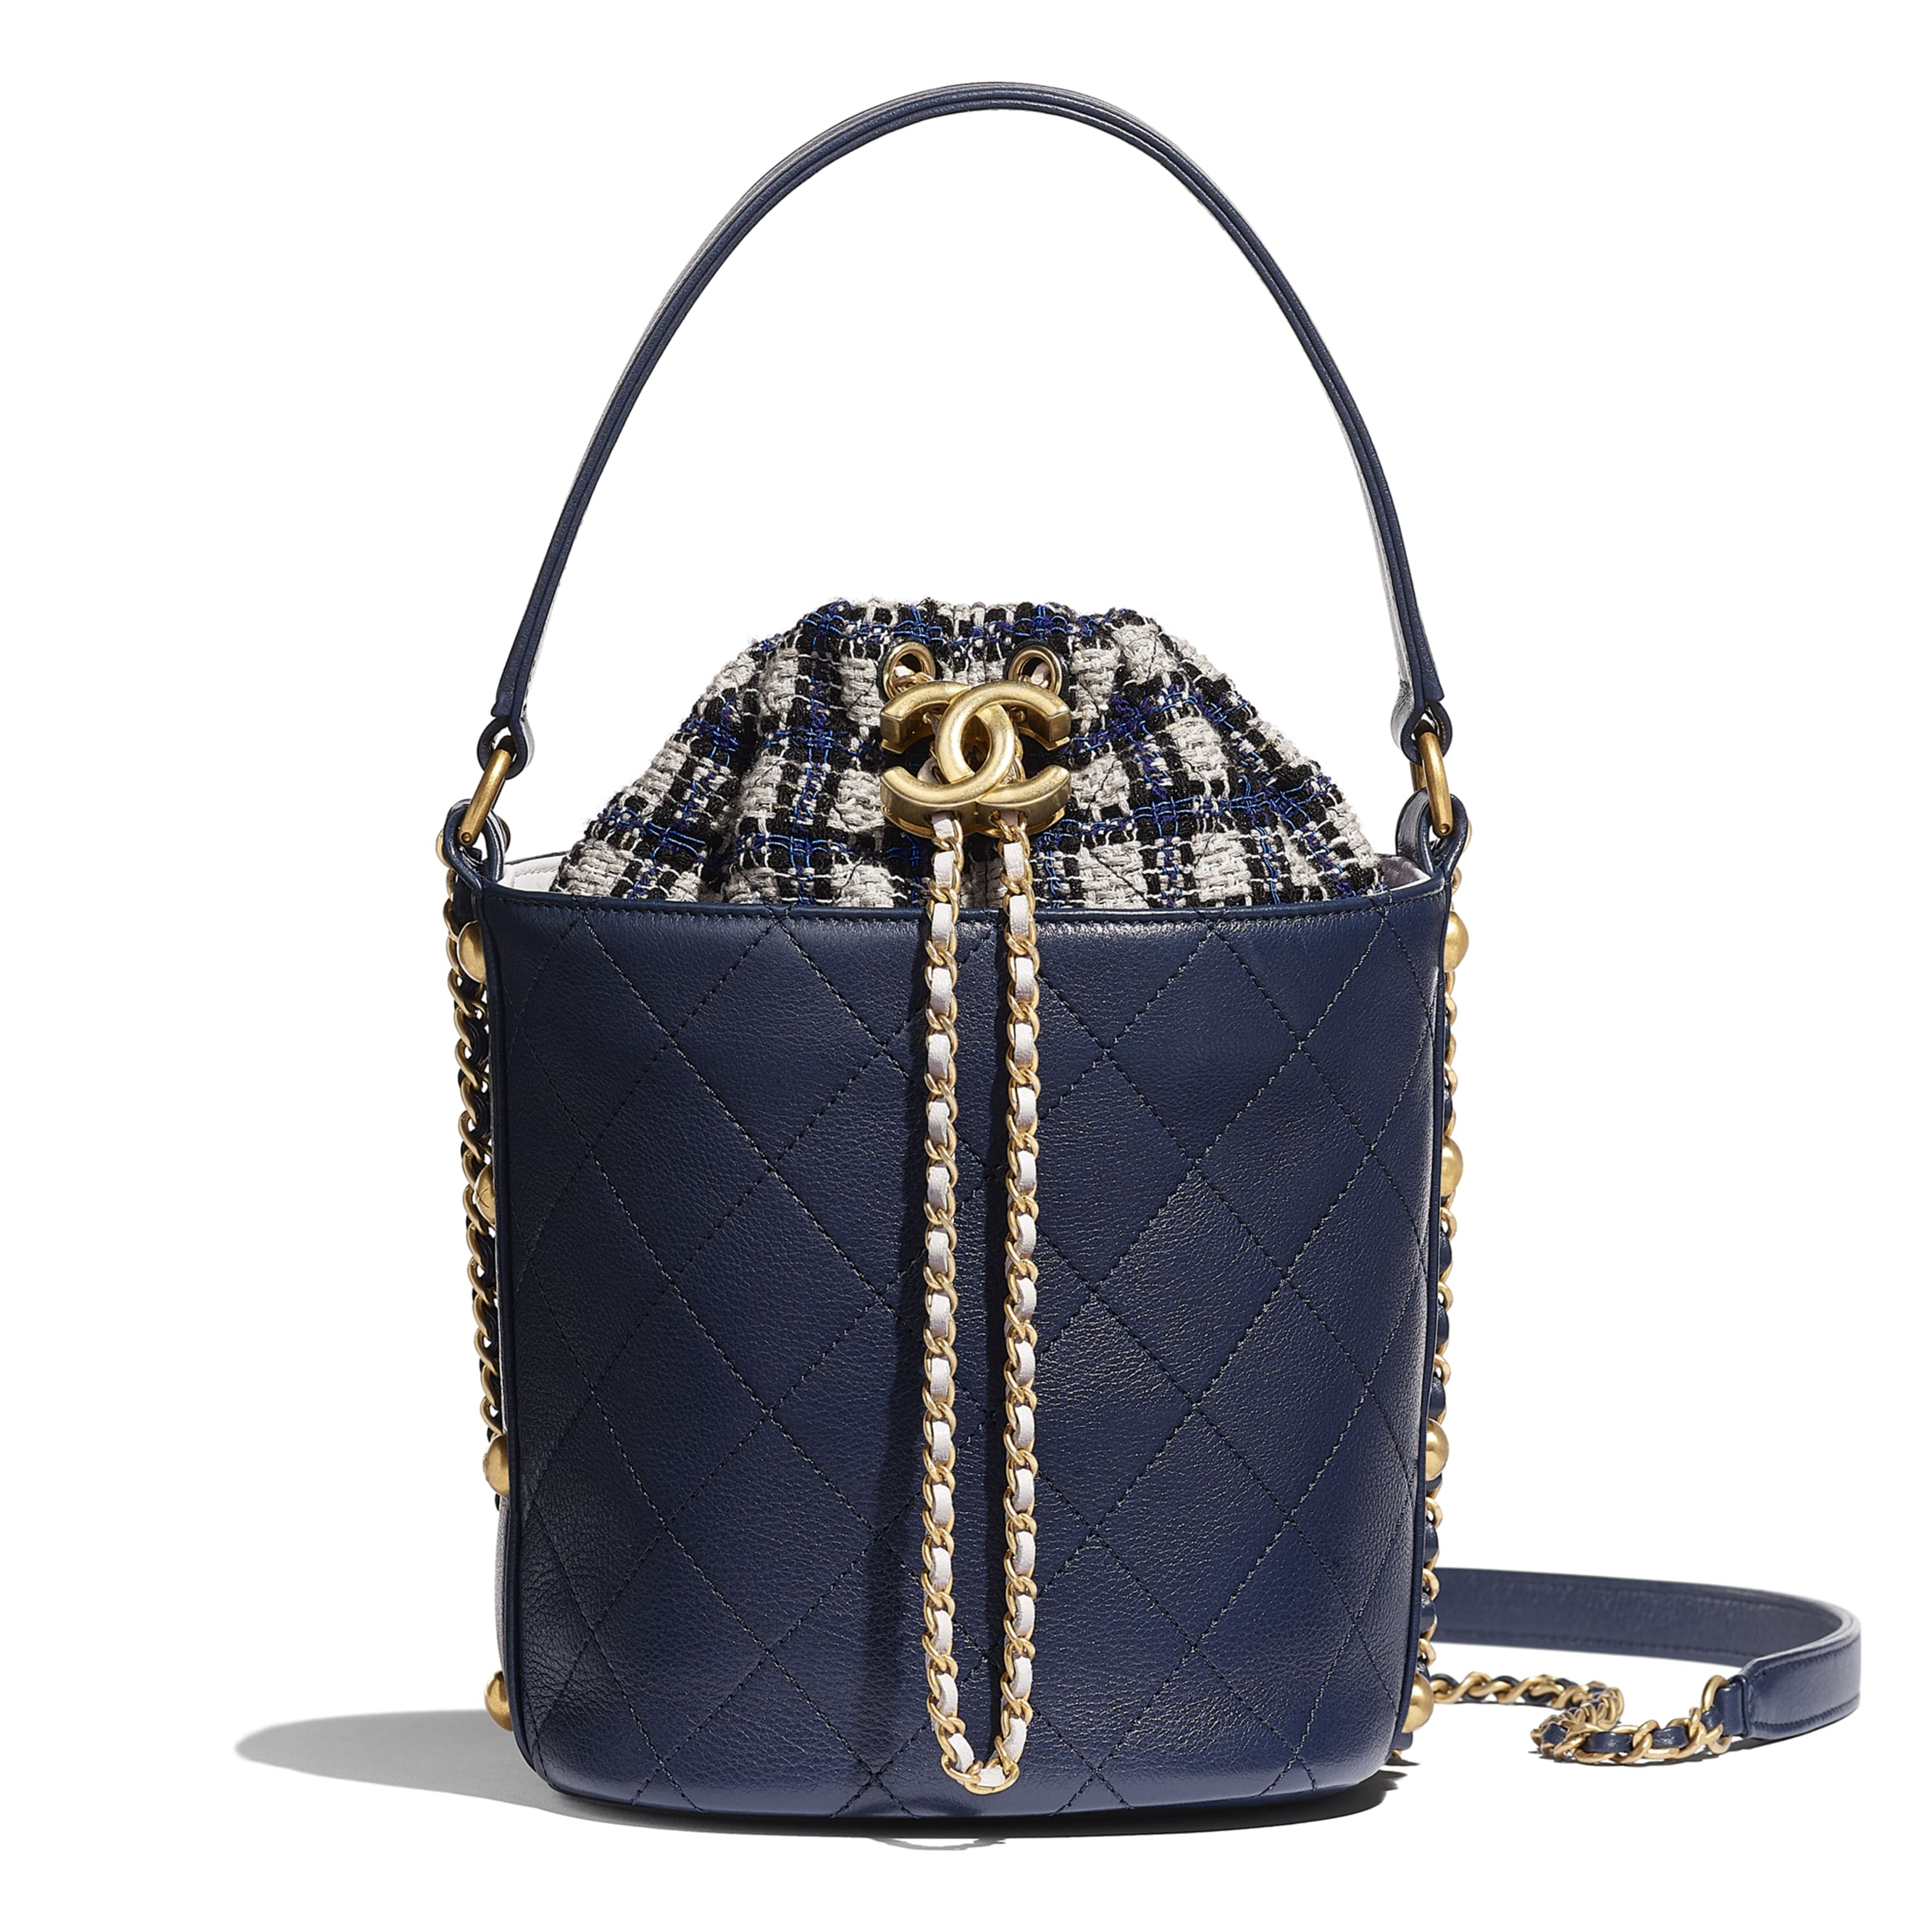 Drawstring Bag - Navy Blue, Black & Grey - Calfskin, Tweed & Gold-Tone Metal - CHANEL - Default view - see standard sized version